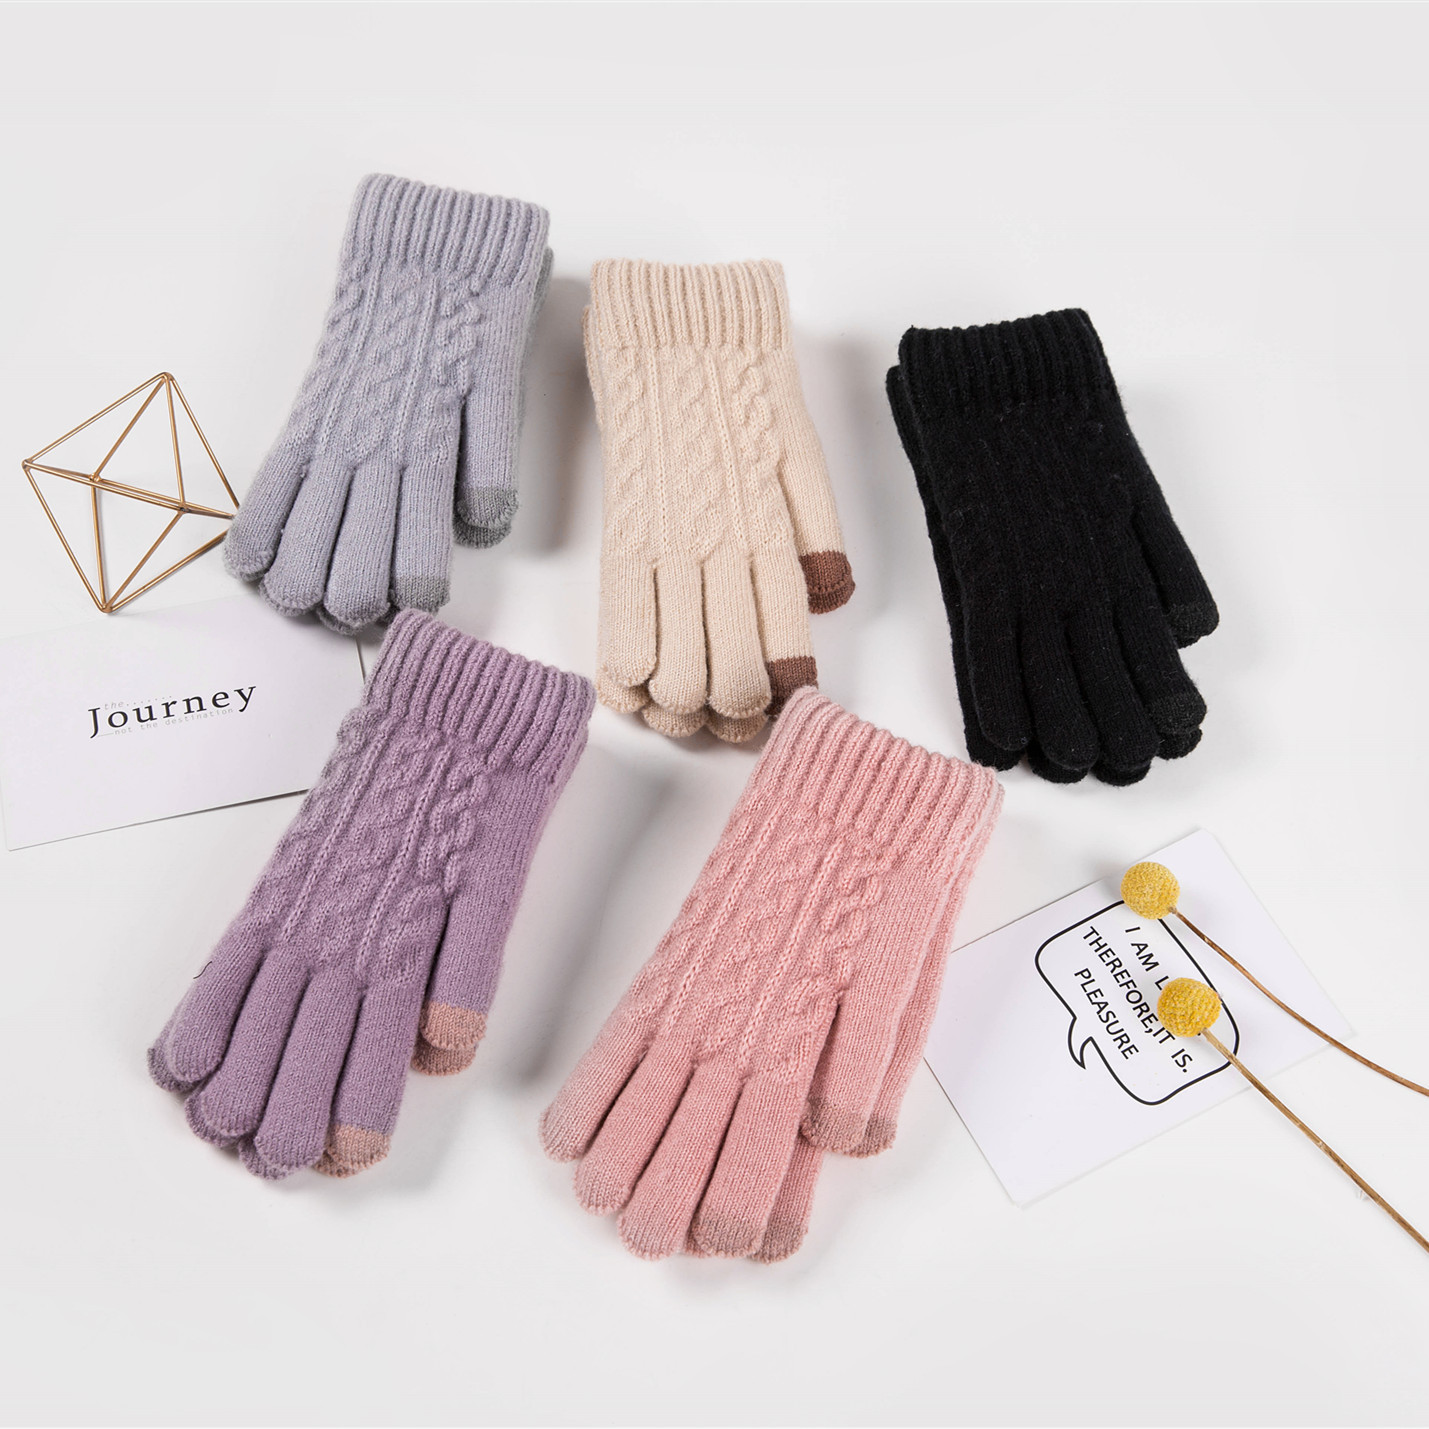 Gorgeously Soft Knitted Gloves for Cozy Winter Outfit